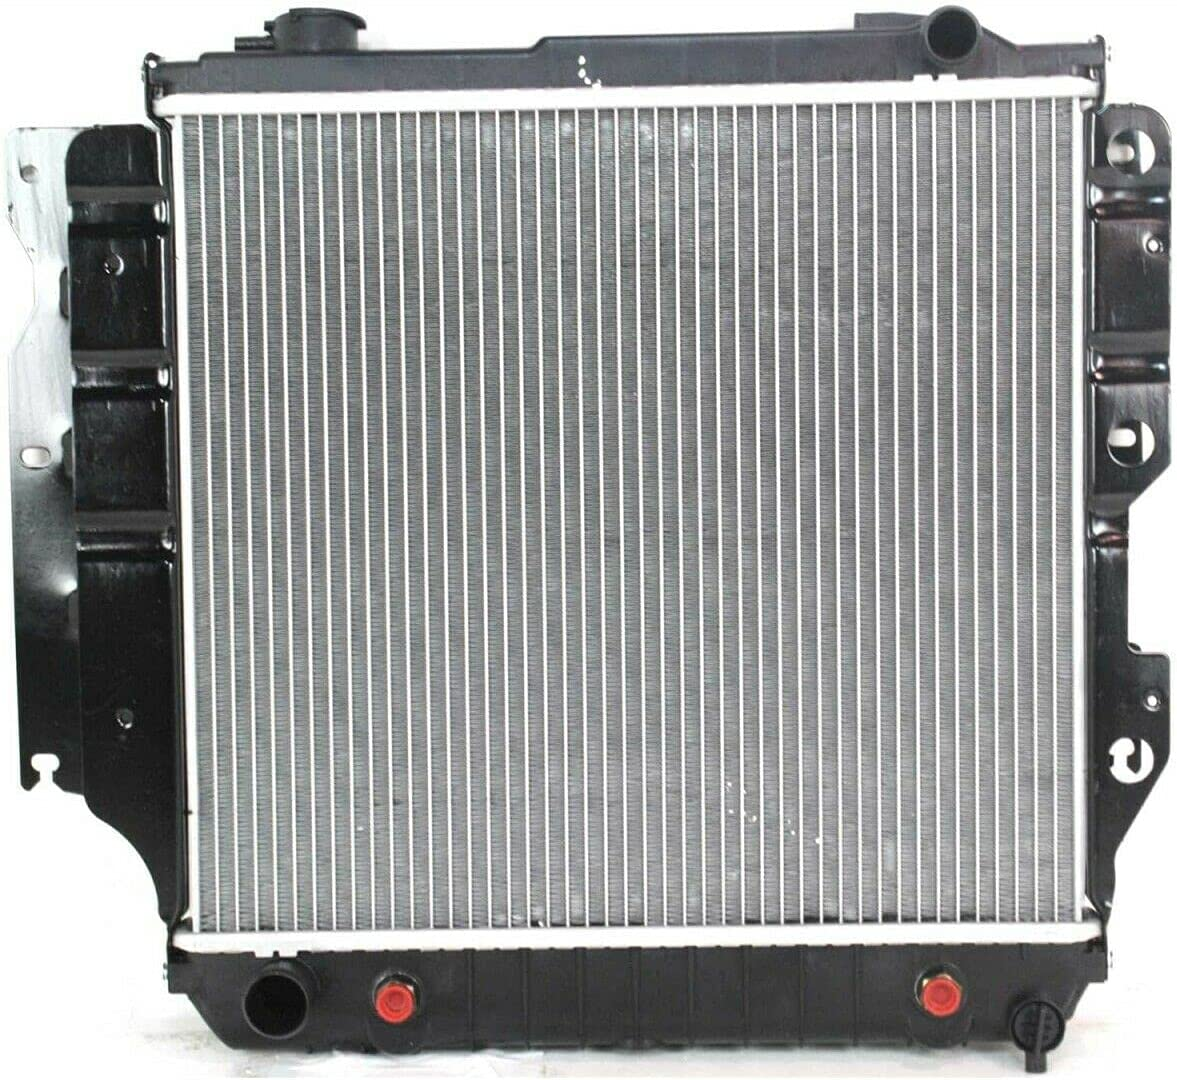 Genuine OLINDA Radiator Popular shop is the lowest price challenge CH3010331 55037653AB J 1987-2004 with Compatible